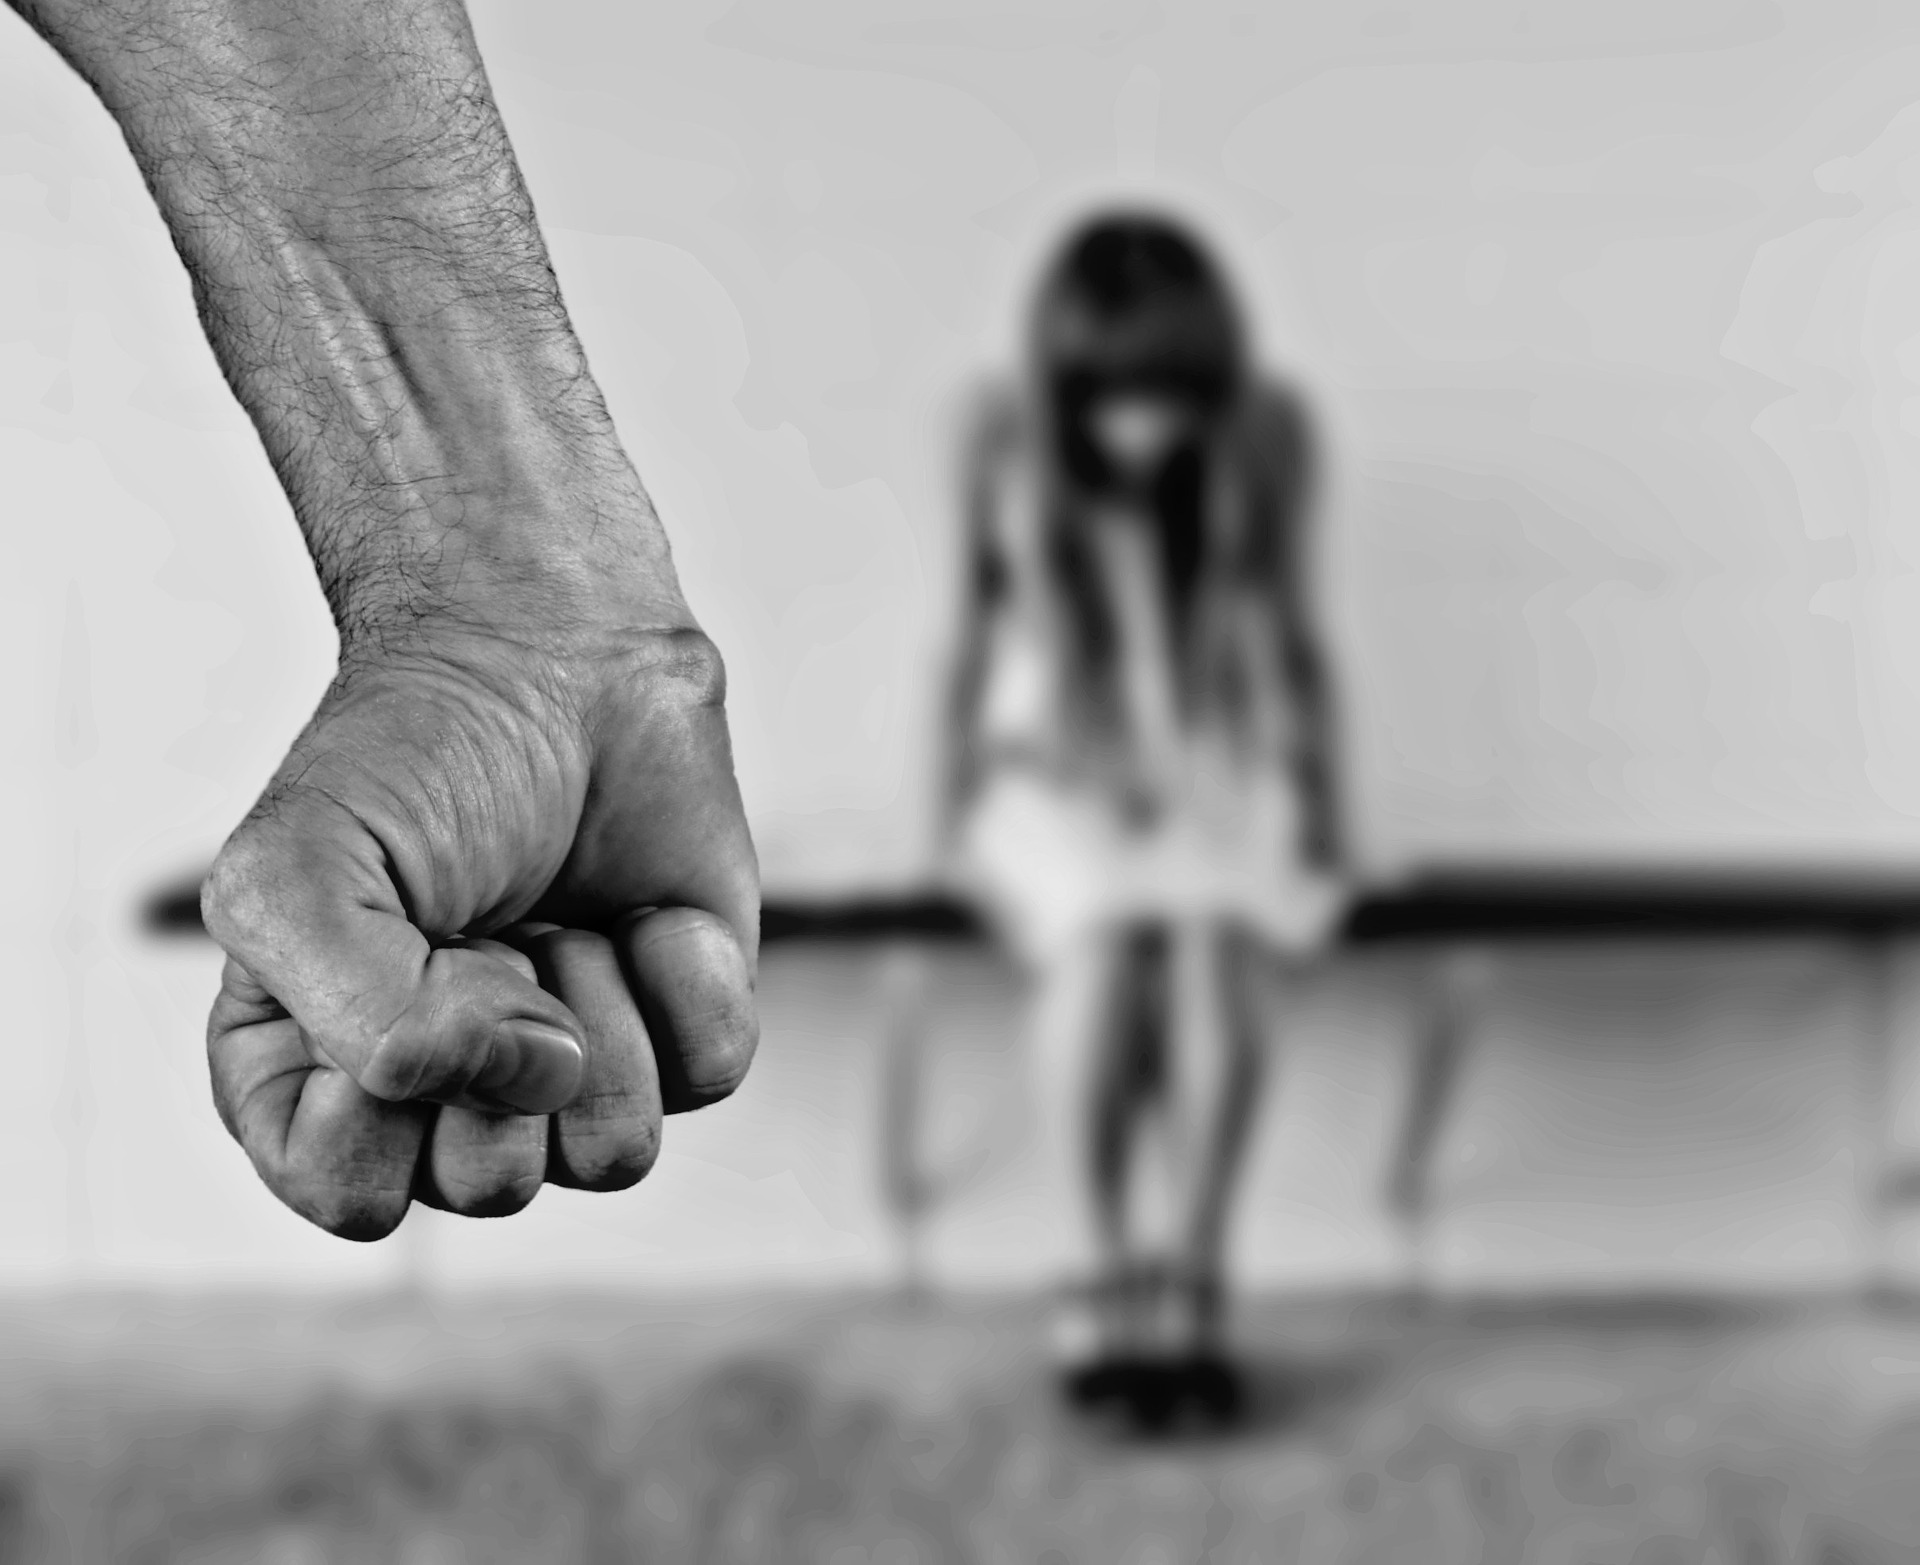 A court in eastern Assam's Jorhat district on Wednesday sentenced two persons convicted in a rape case to 20 years rigorous imprisonment